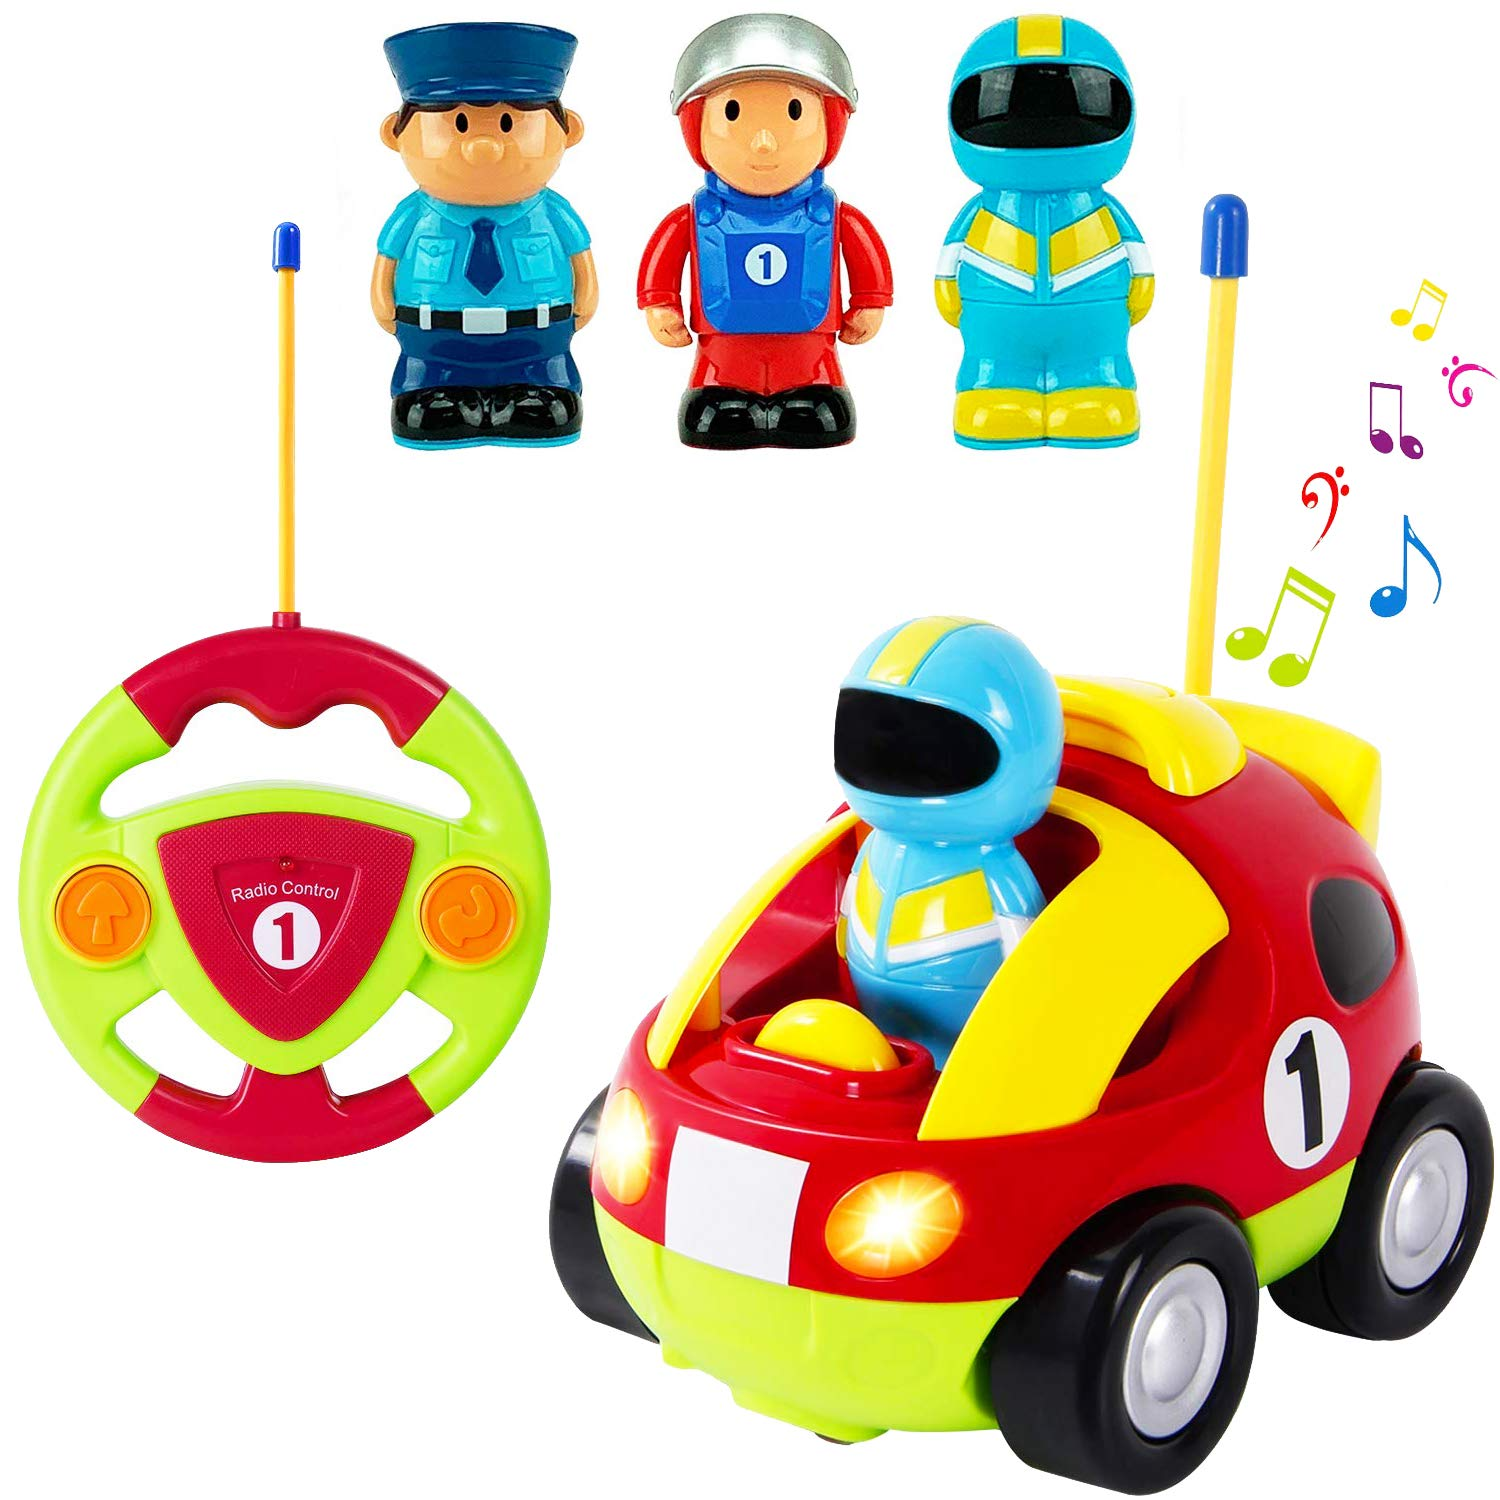 English Packaging Liberty Imports Cartoon R//C Race Car Radio Control Toy for Toddlers